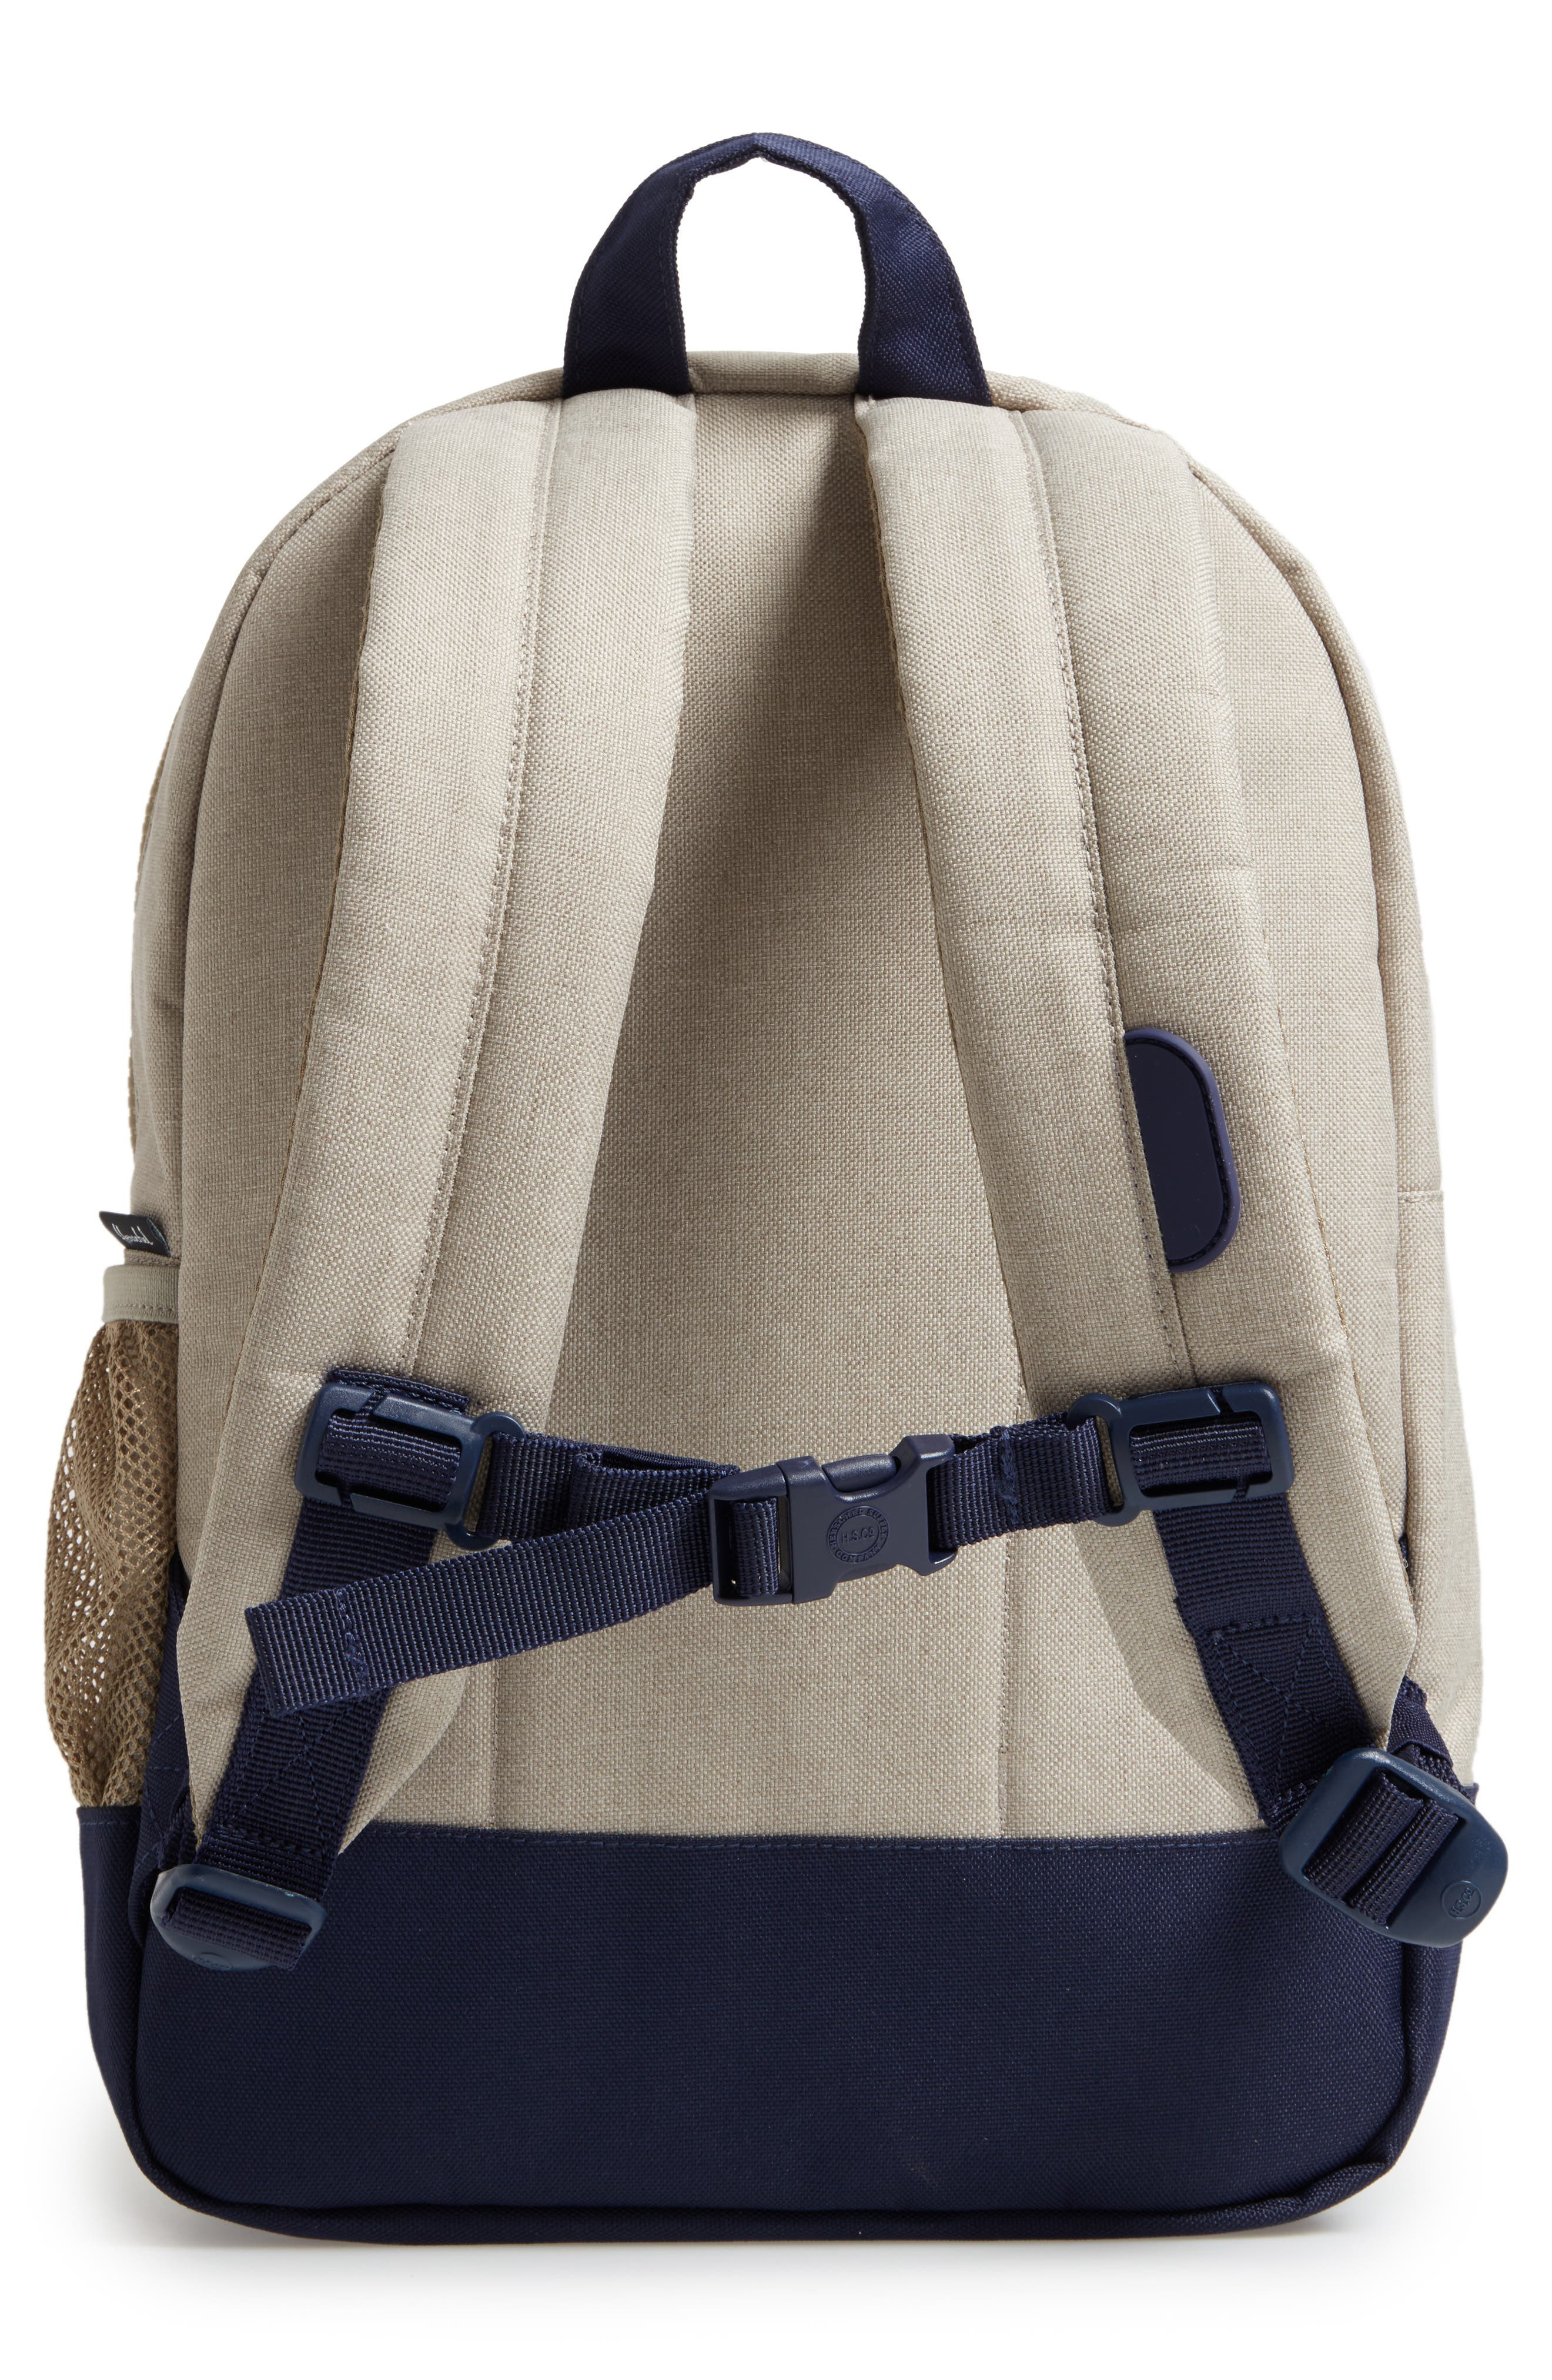 Heritage Backpack,                             Alternate thumbnail 2, color,                             250